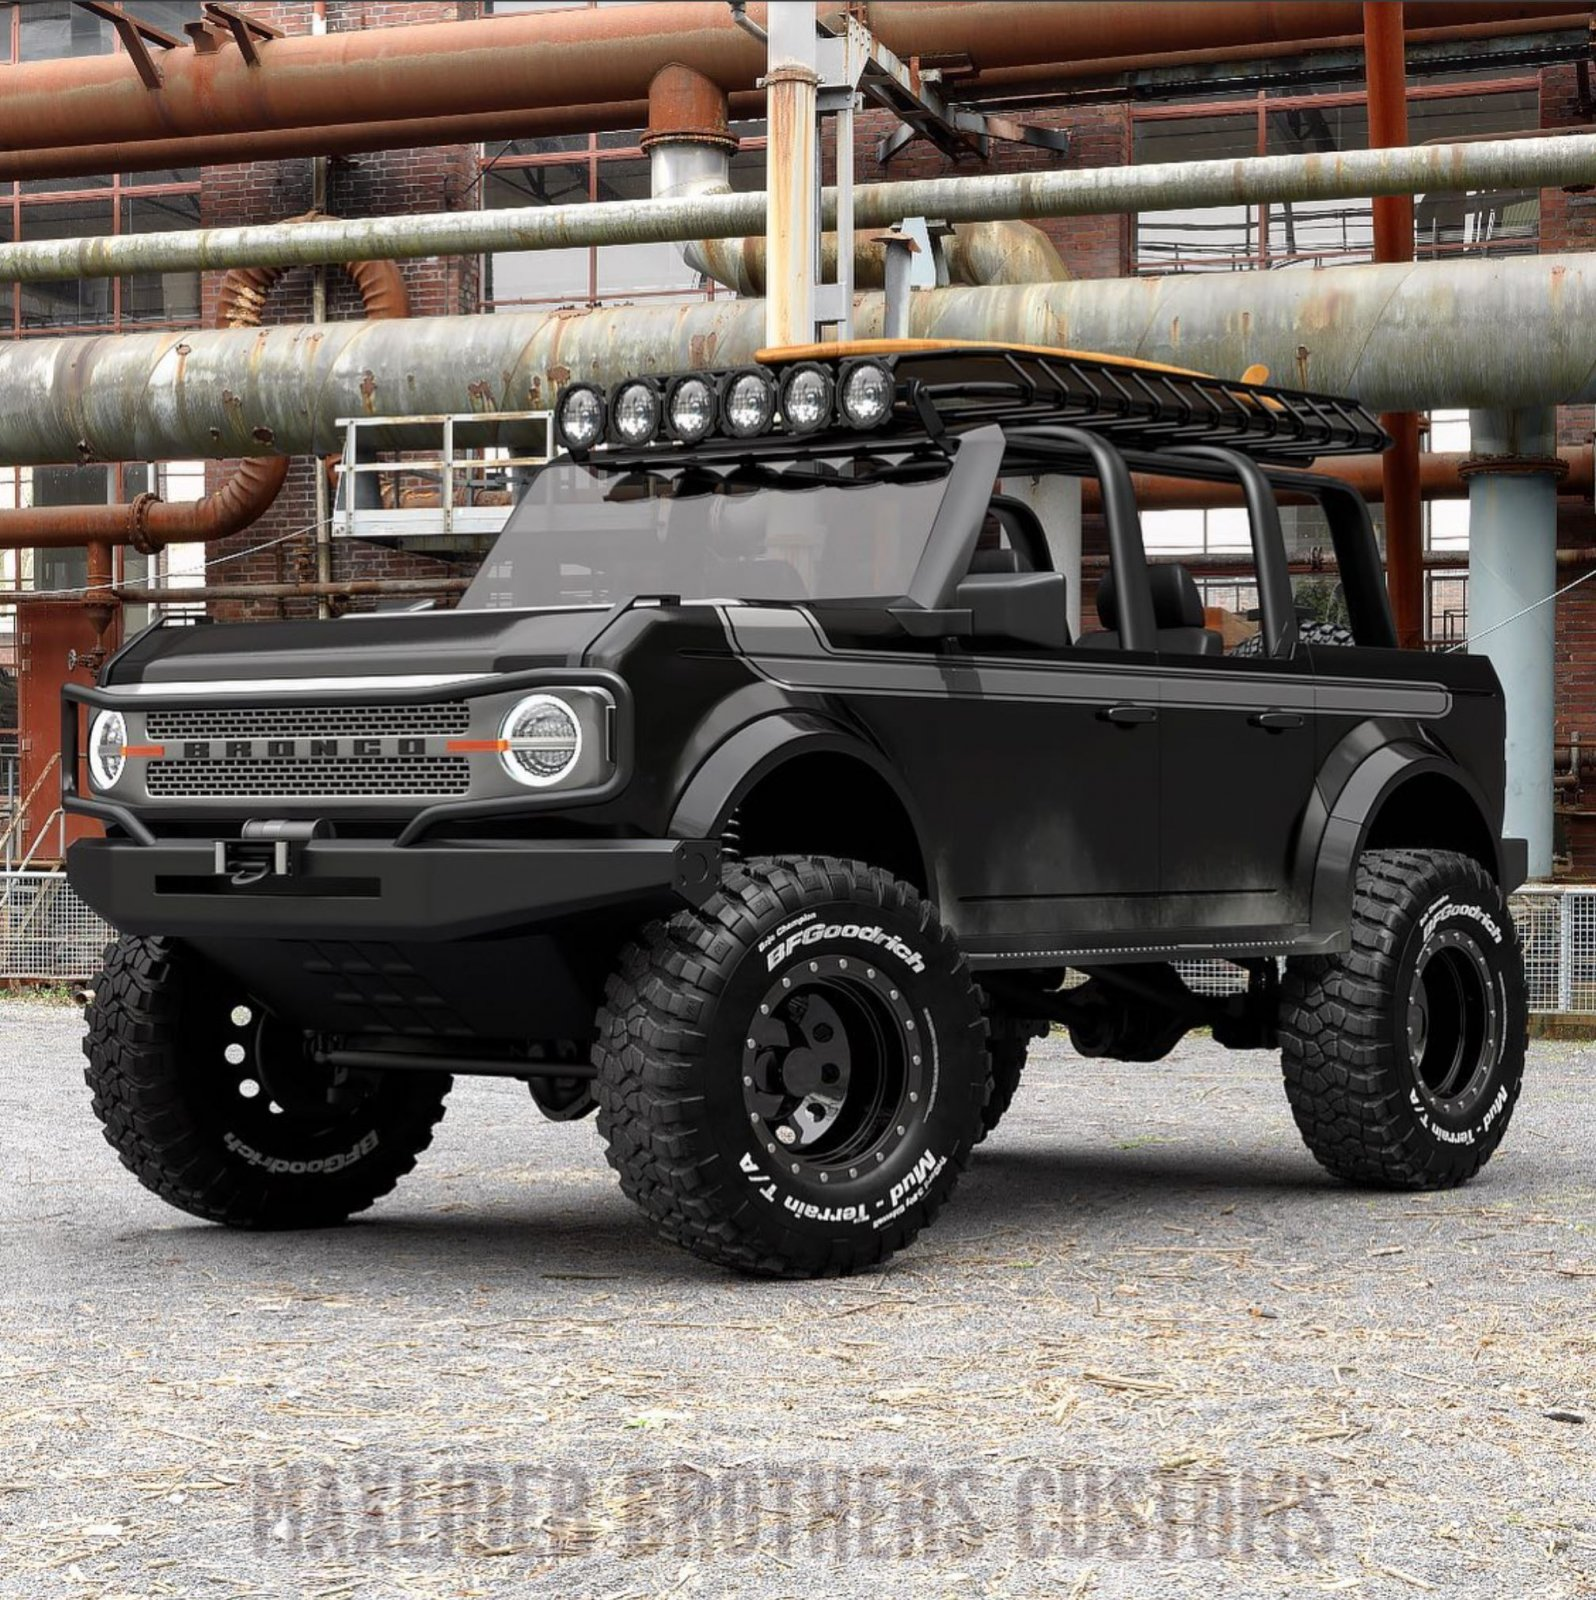 2021 MIDNITE EDITION Ford Bronco By Maxlider Motors.JPG